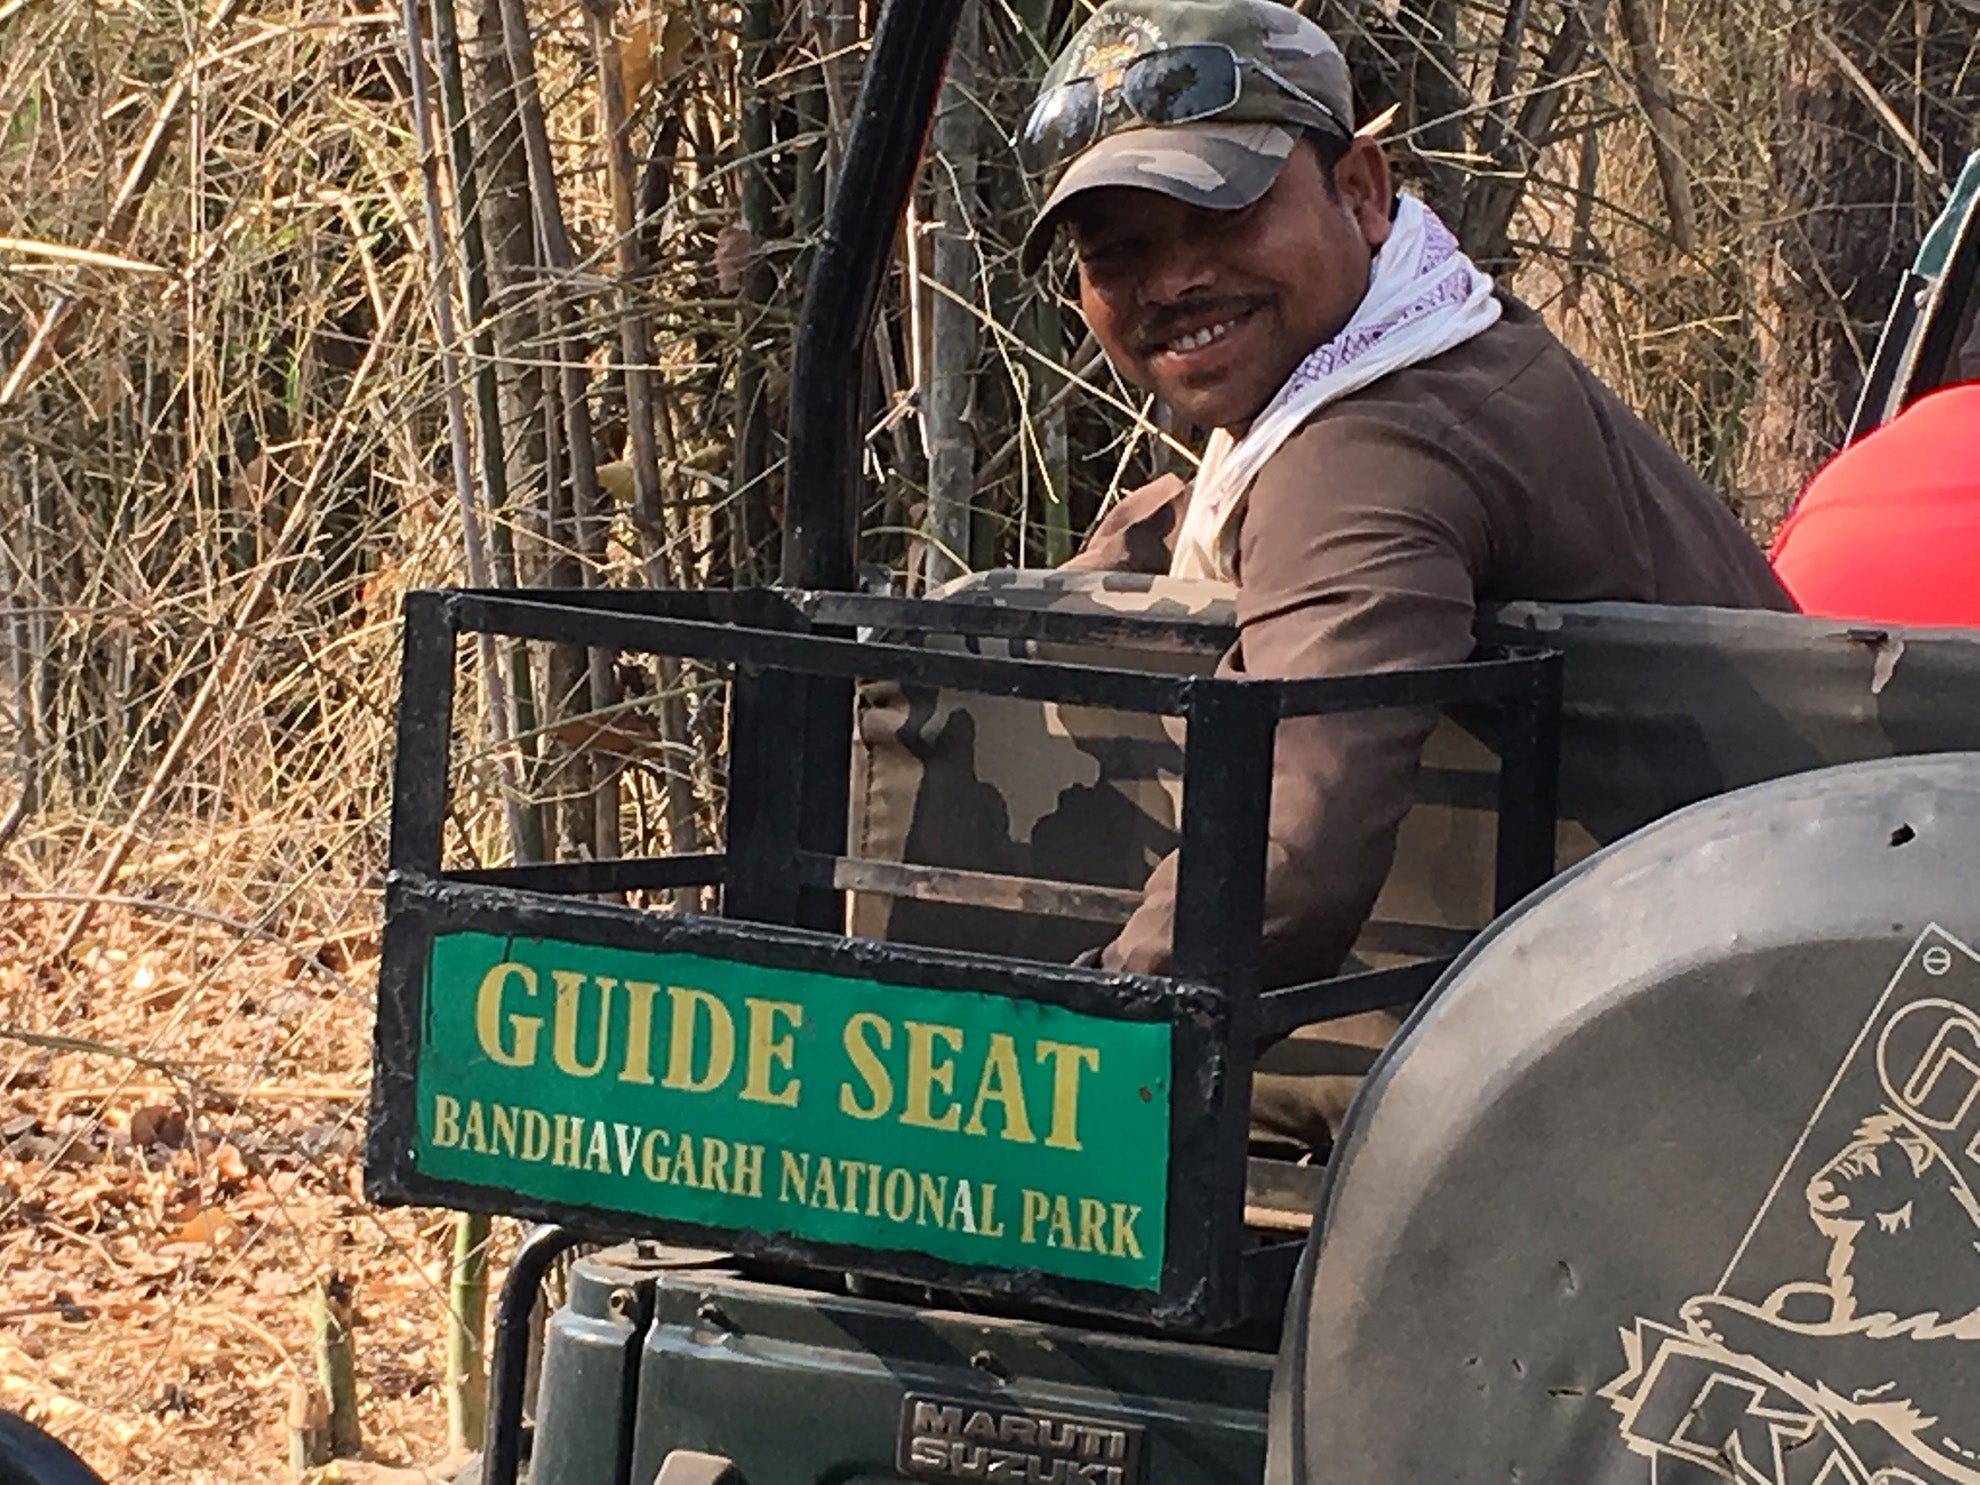 Guide_Seat